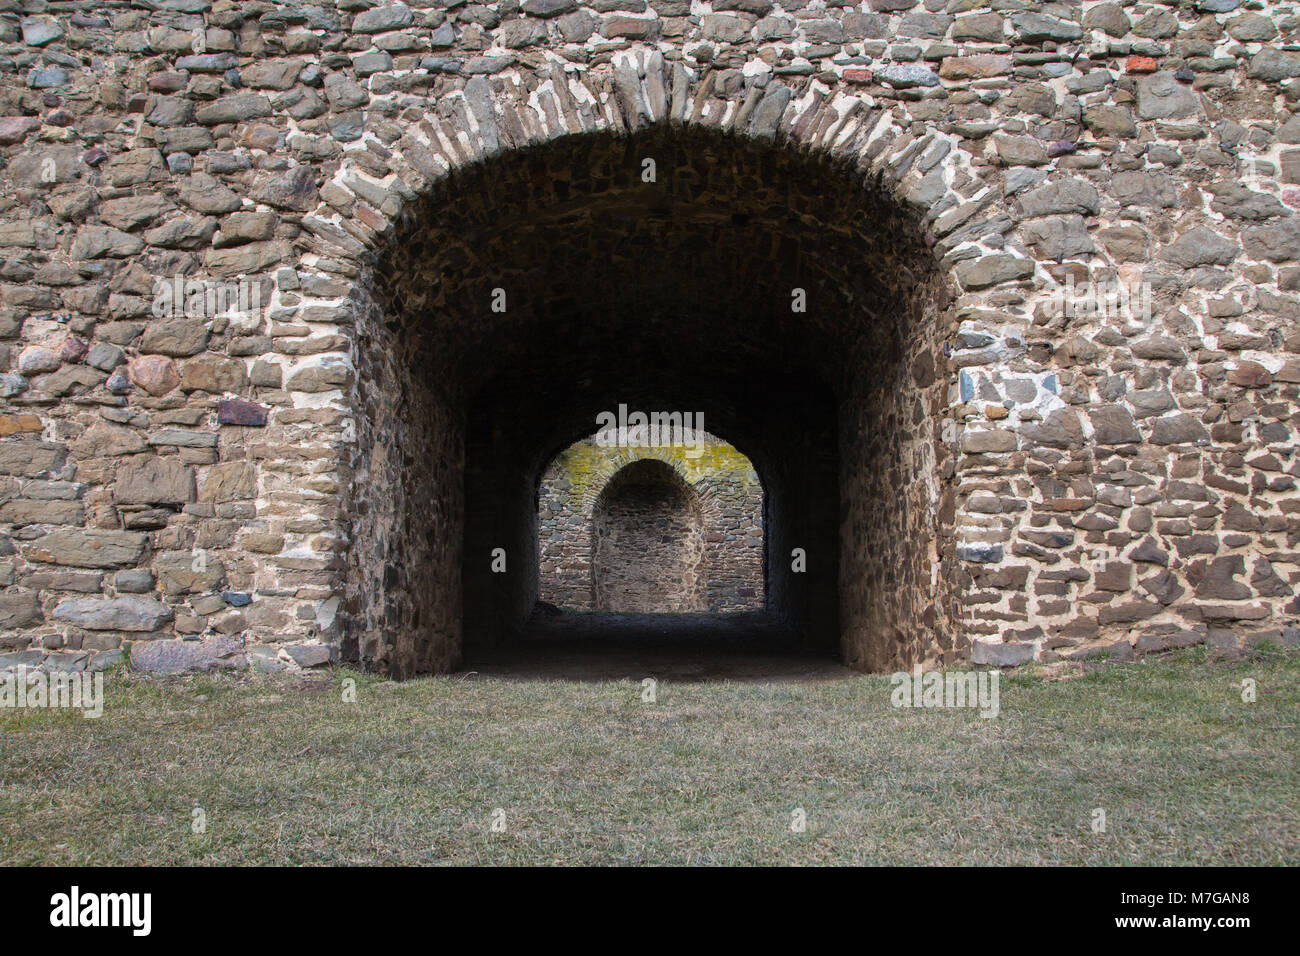 Medieval castle wall with passage, for backgrounds and textures. - Stock Image